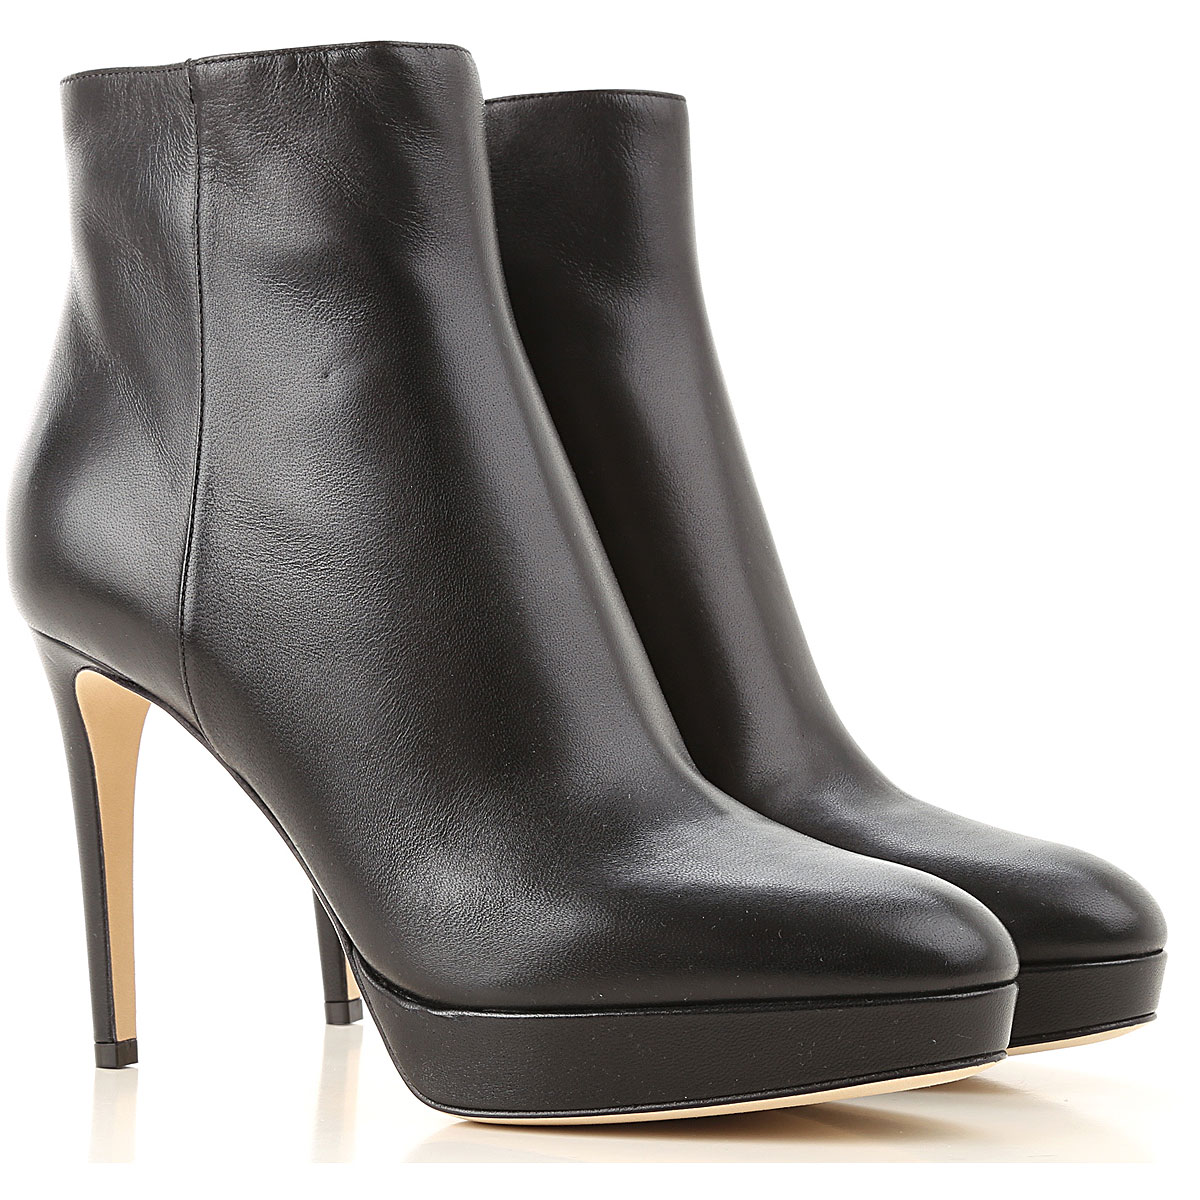 Sergio Rossi Boots for Women, Booties On Sale, Black, Leather, 2019, 10 9